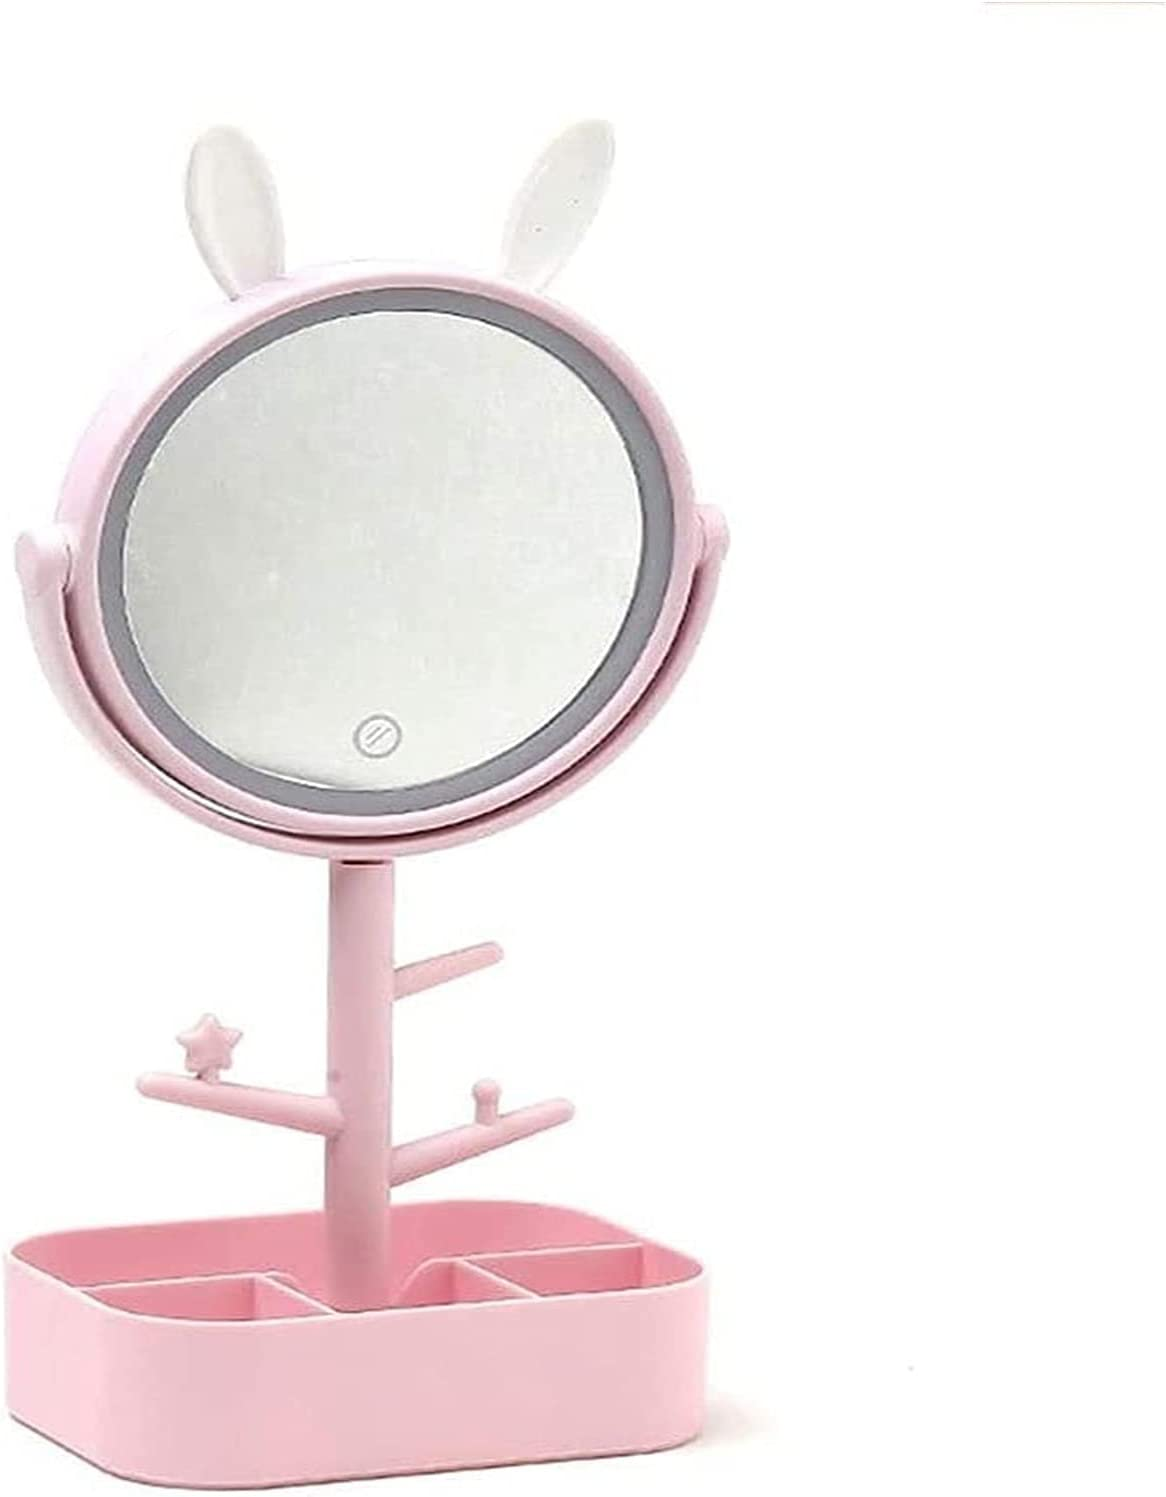 Baltimore Mall ZHJ Classic Illuminated Makeup Mirror Dressin Tabletop Rechargeable USB